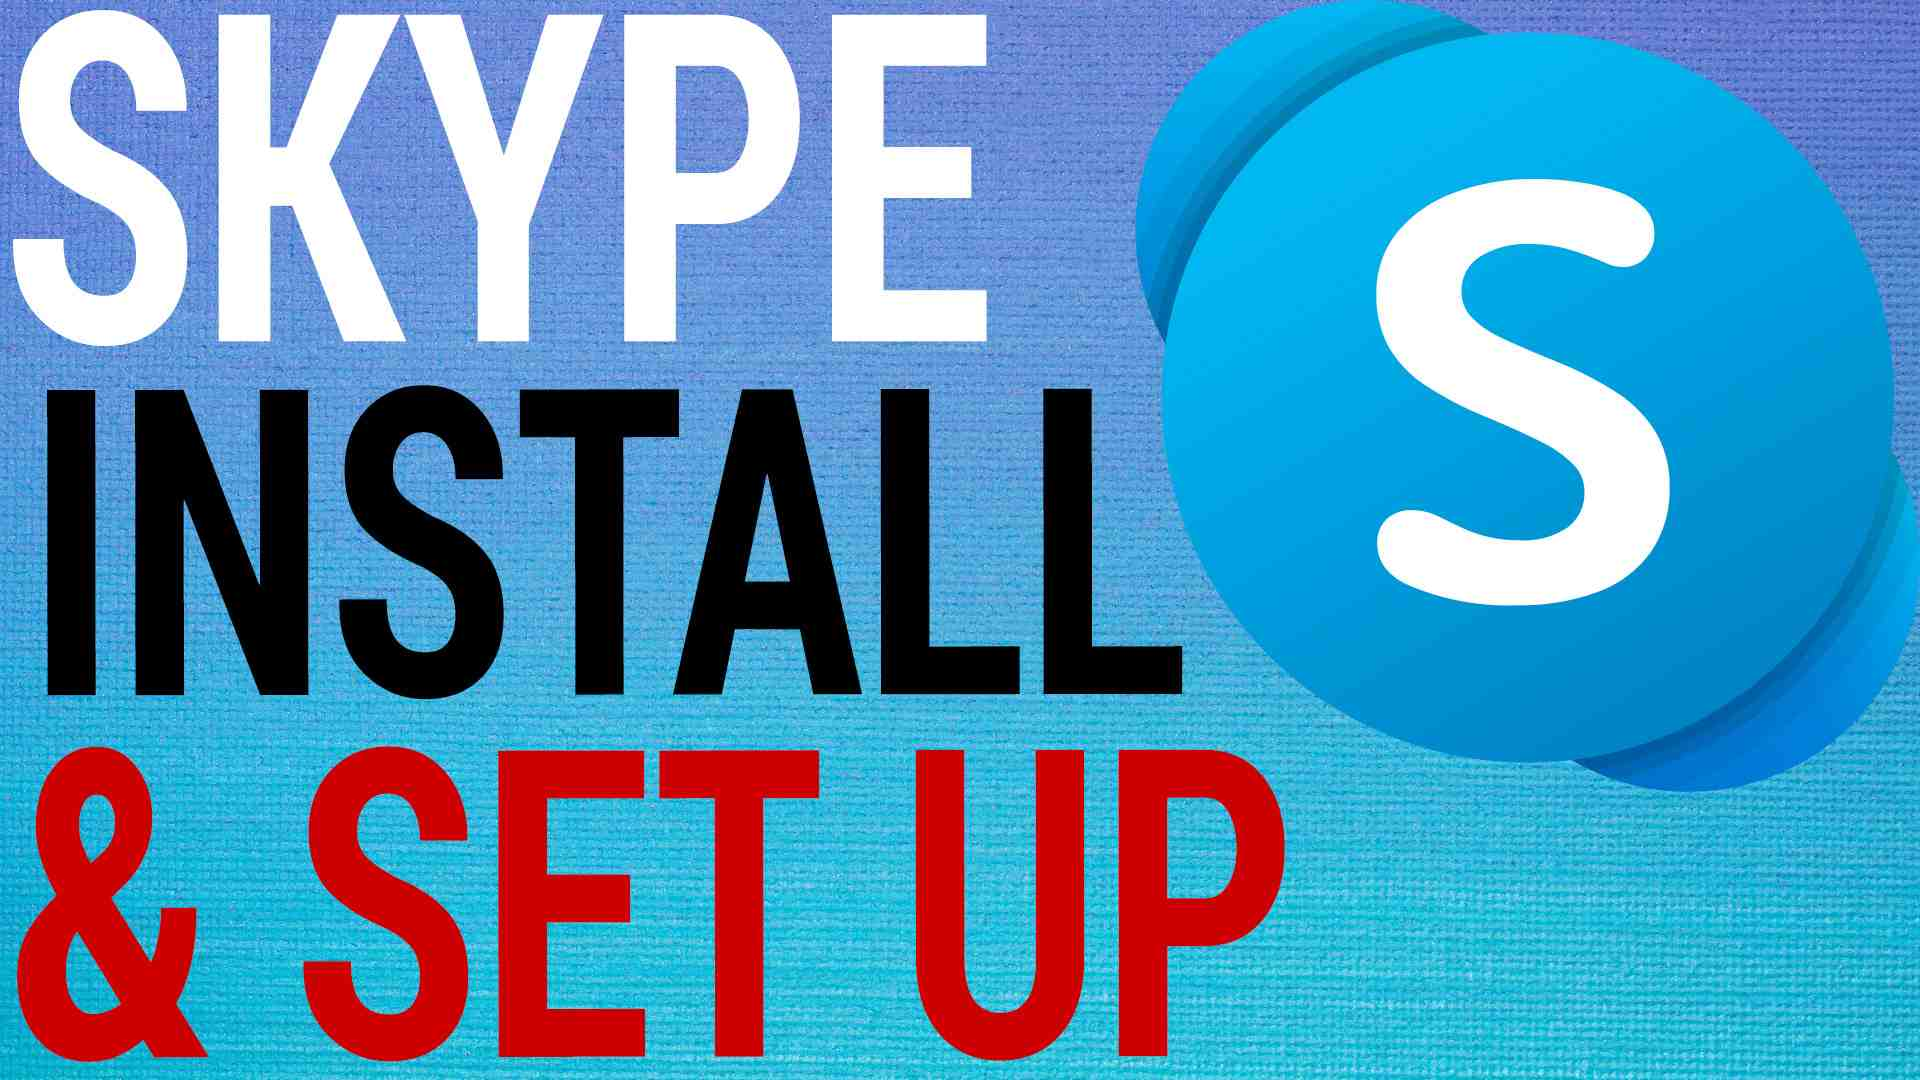 How To Install & Set Up Skype on Windows 10